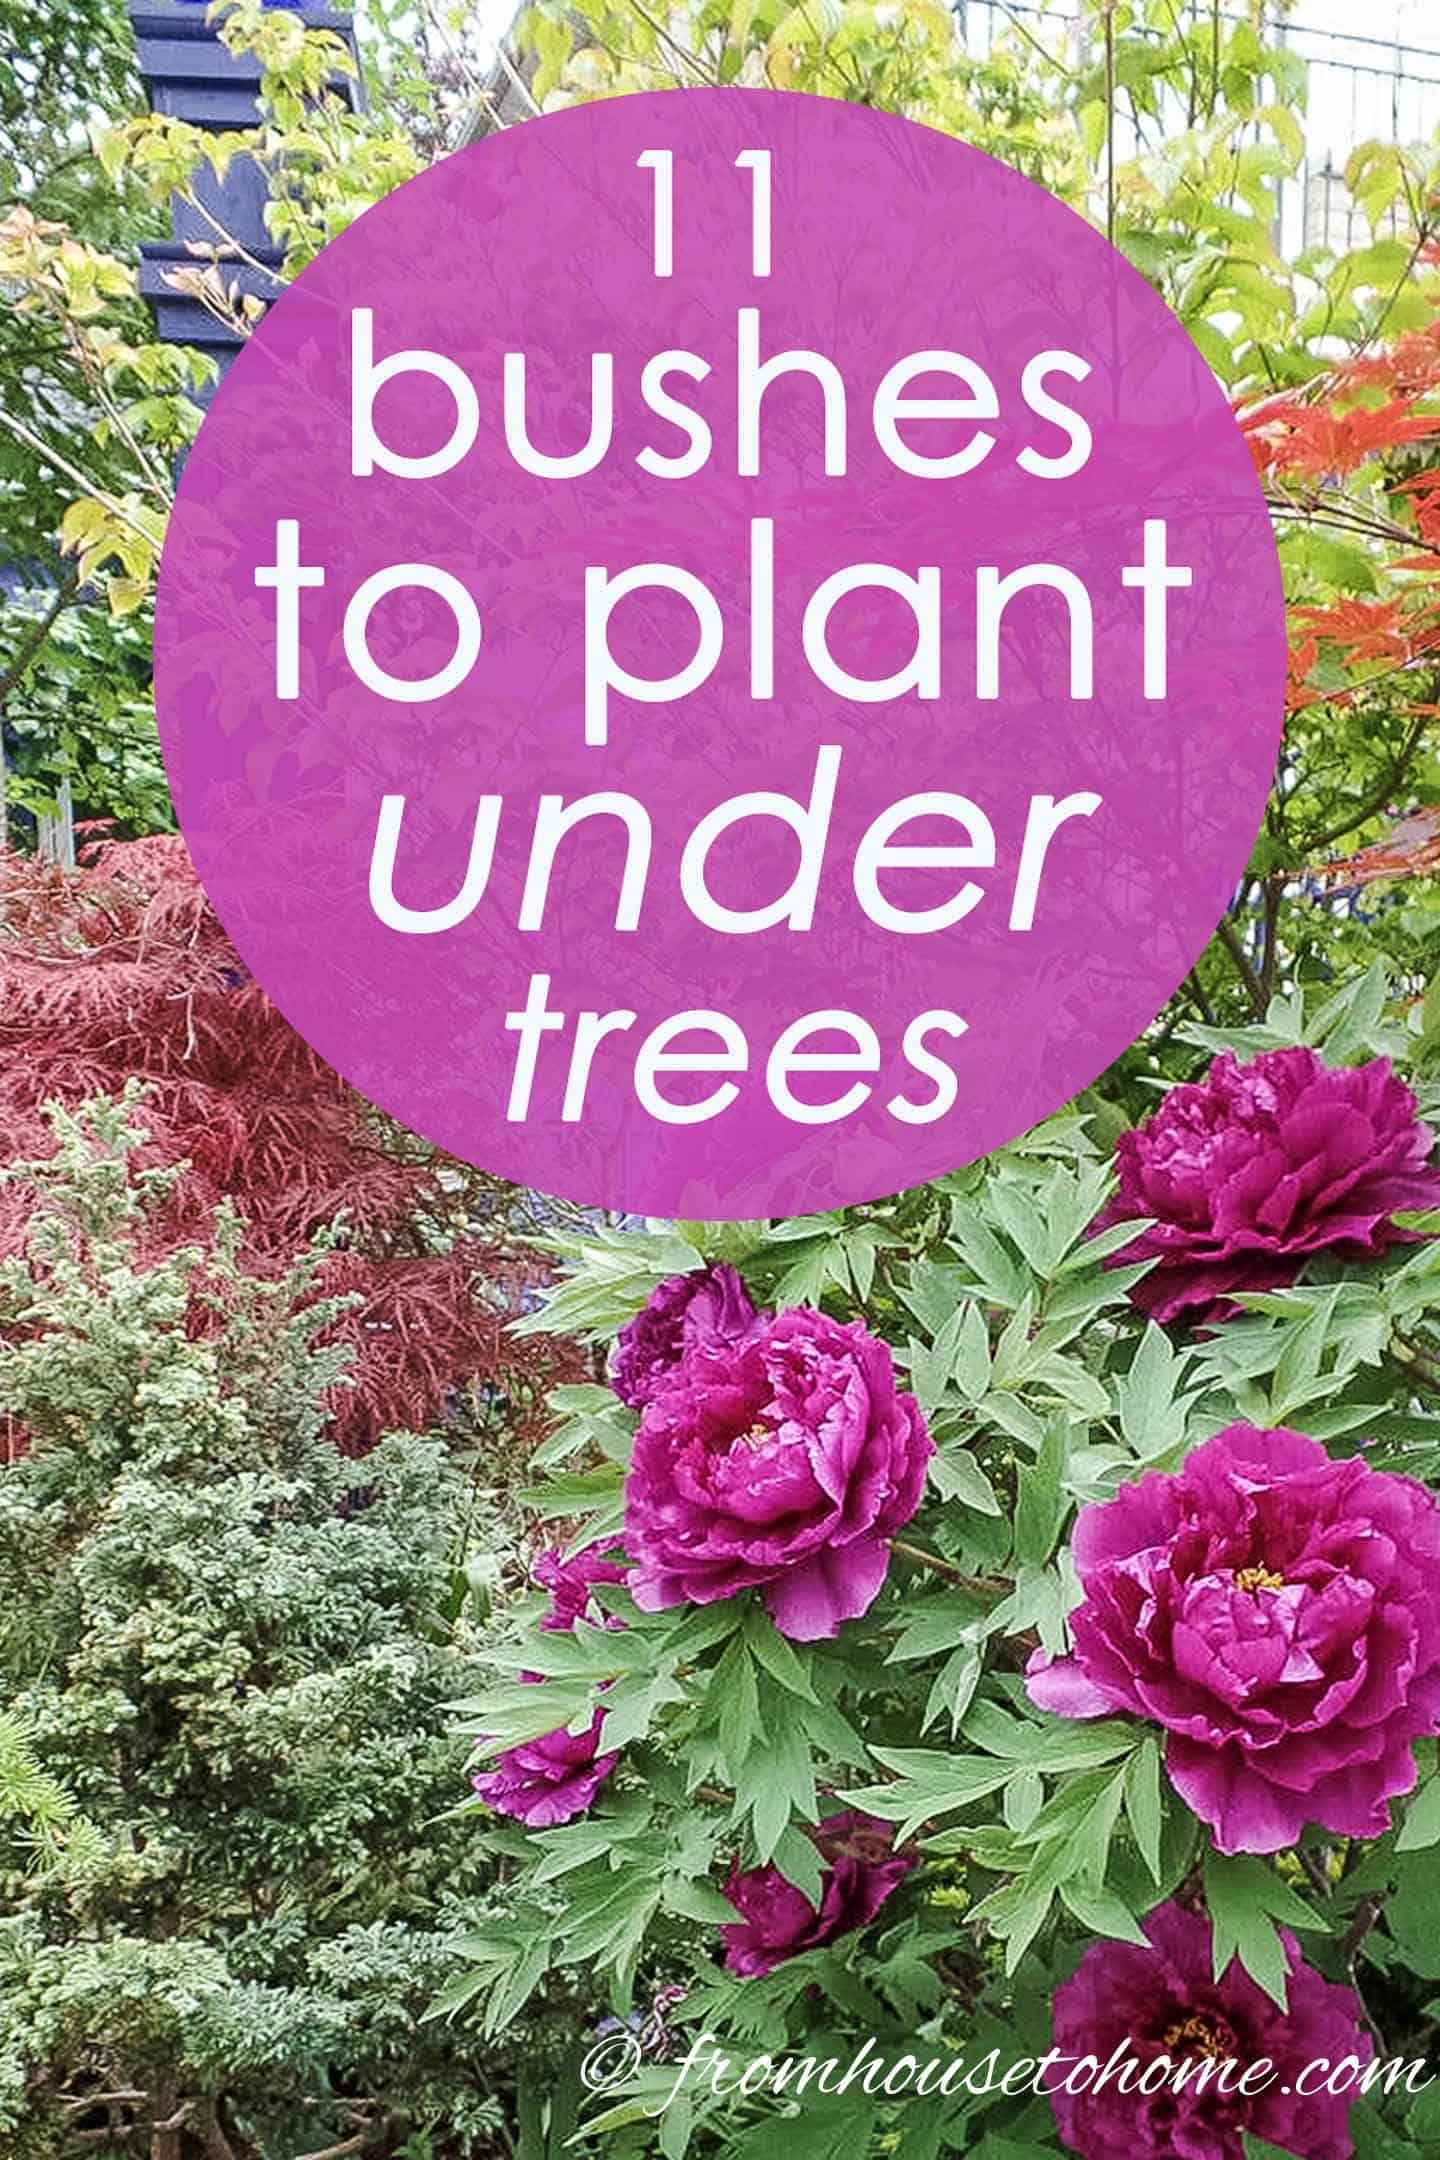 shrubs for shade on shade loving shrubs the best bushes to plant under trees gardening from house to home plants under trees shade loving shrubs shade garden plants shade loving shrubs shade garden plants